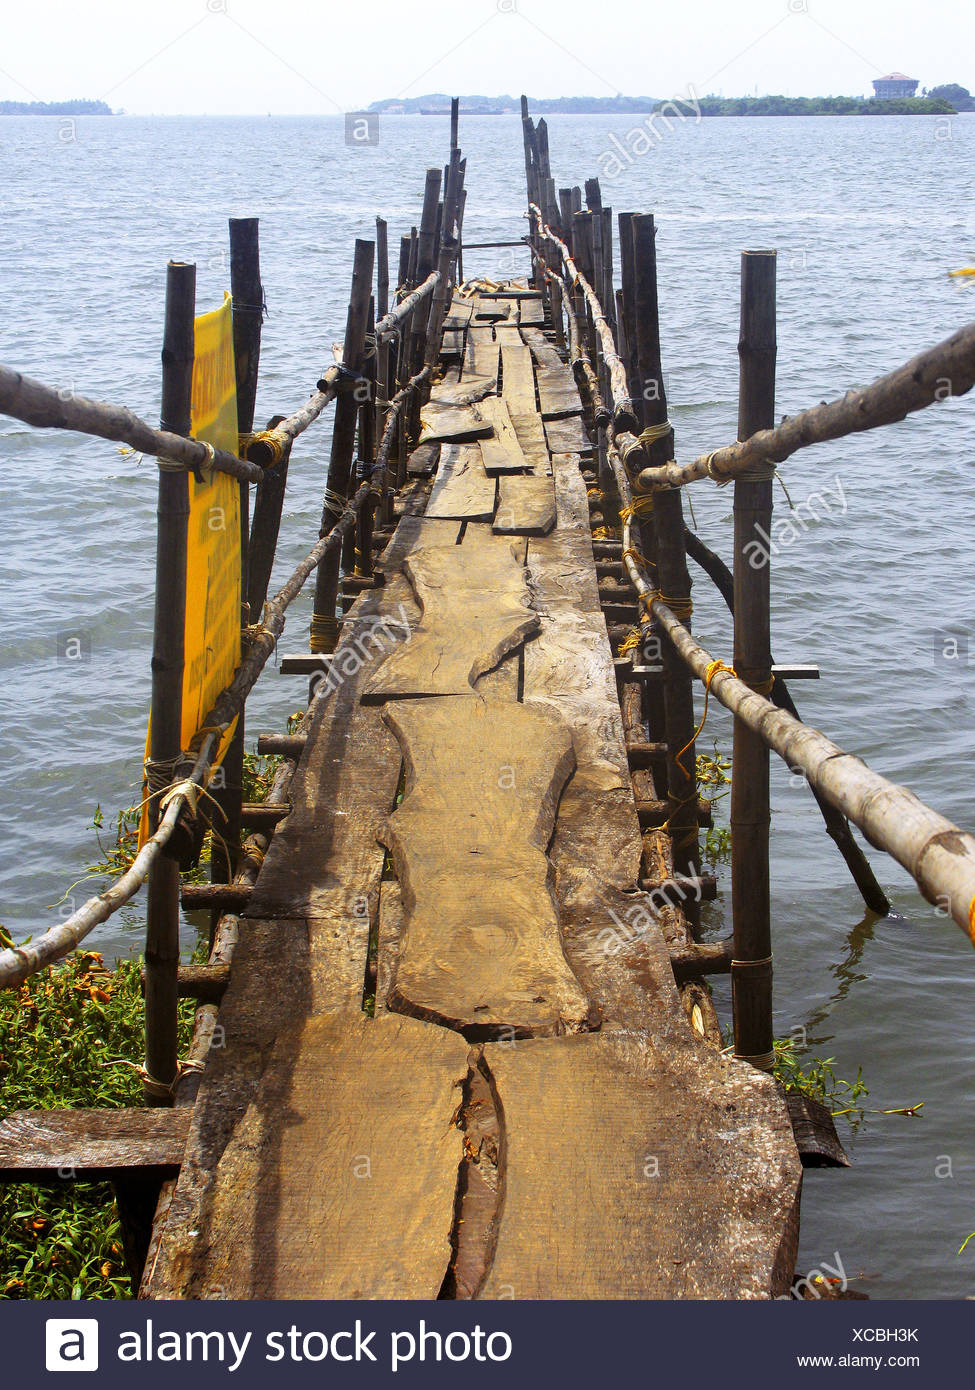 A wooden Landing stage (bridge) for Ferryboats leading towards a Dock. Ernakulam (Cochin) Kerala, India. - Stock Image